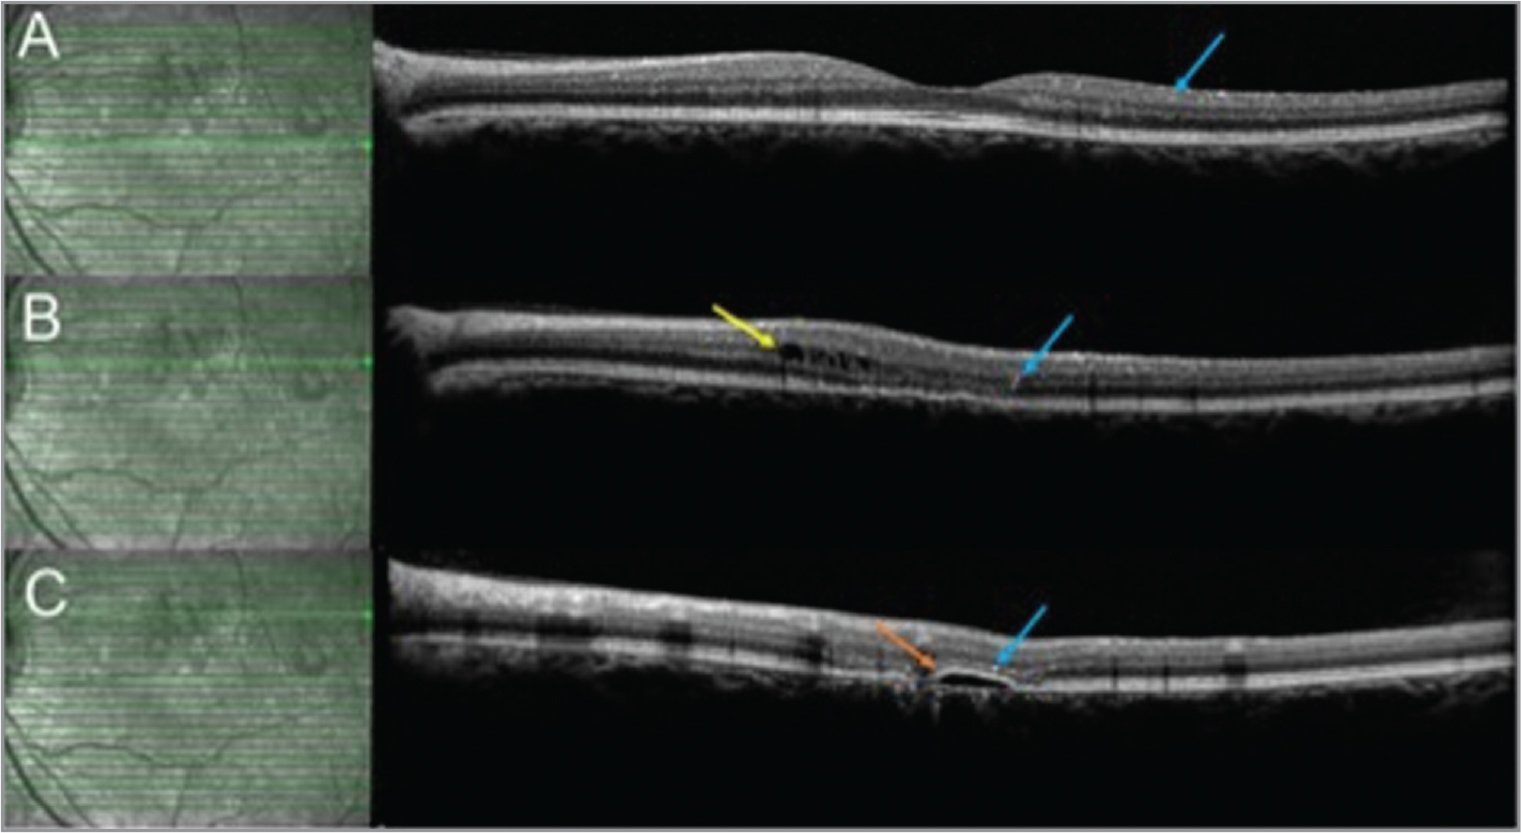 Optical coherence tomography of the left macula 4 years after presentation continued to have canthaxanthin crystals (blue arrows) at various parts of the retina. New intraretinal cysts (yellow arrow) (B), disruption of the retinal pigment epithelium (B, C), outer retinal atrophy, and a pigmented retinal detachment (orange arrow) (C) were all detected at this visit.